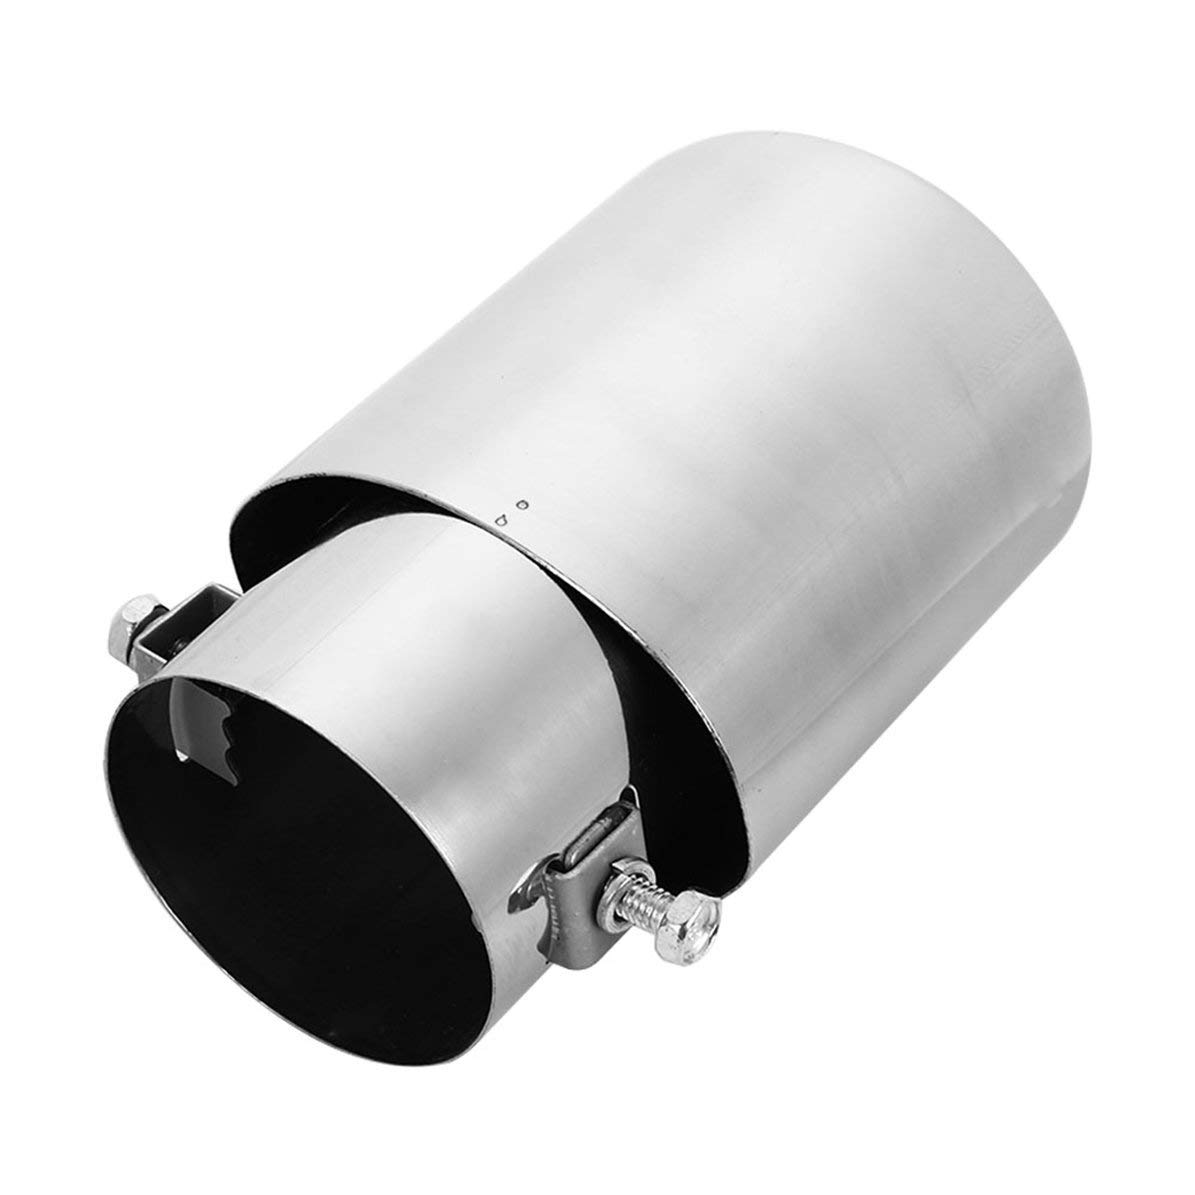 WEIWEITOE Car Tail Rear Straight Exhaust Muffler Pipe Tip Stainless Steel Chrome 63-76,metal,